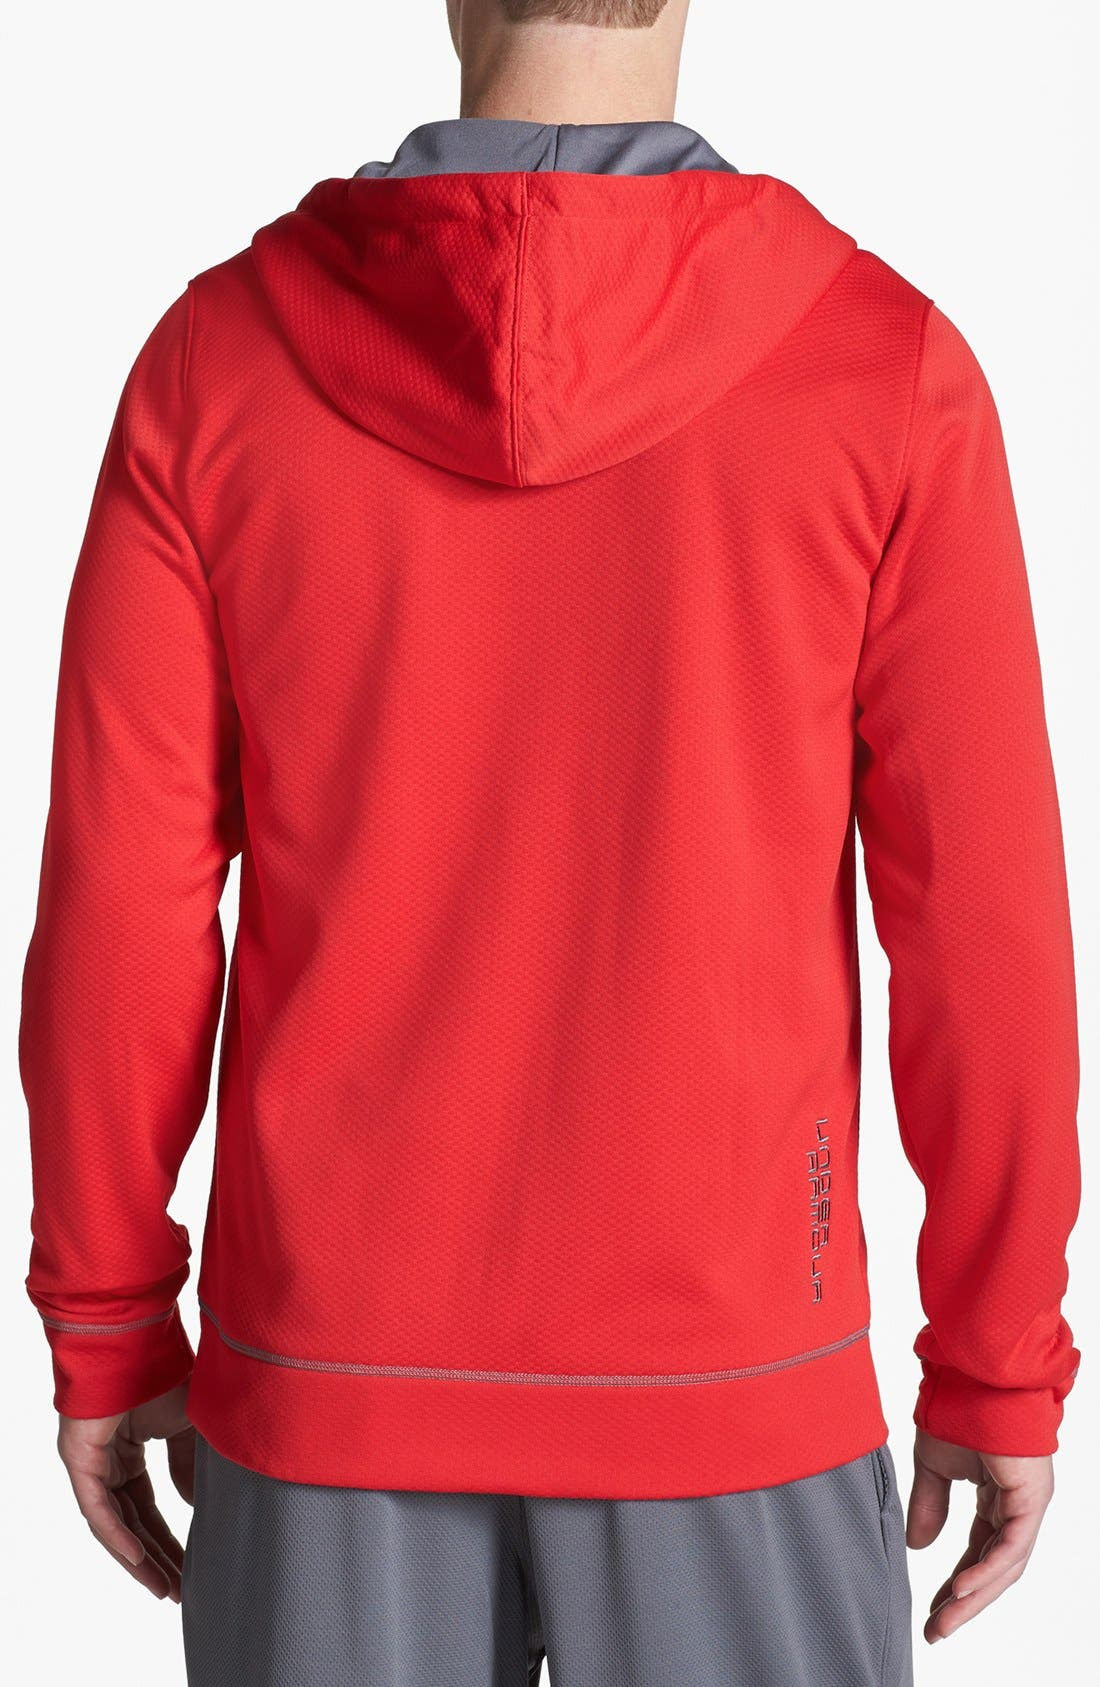 Alternate Image 2  - Under Armour 'Tech' Loose Fit Fleece Hoodie